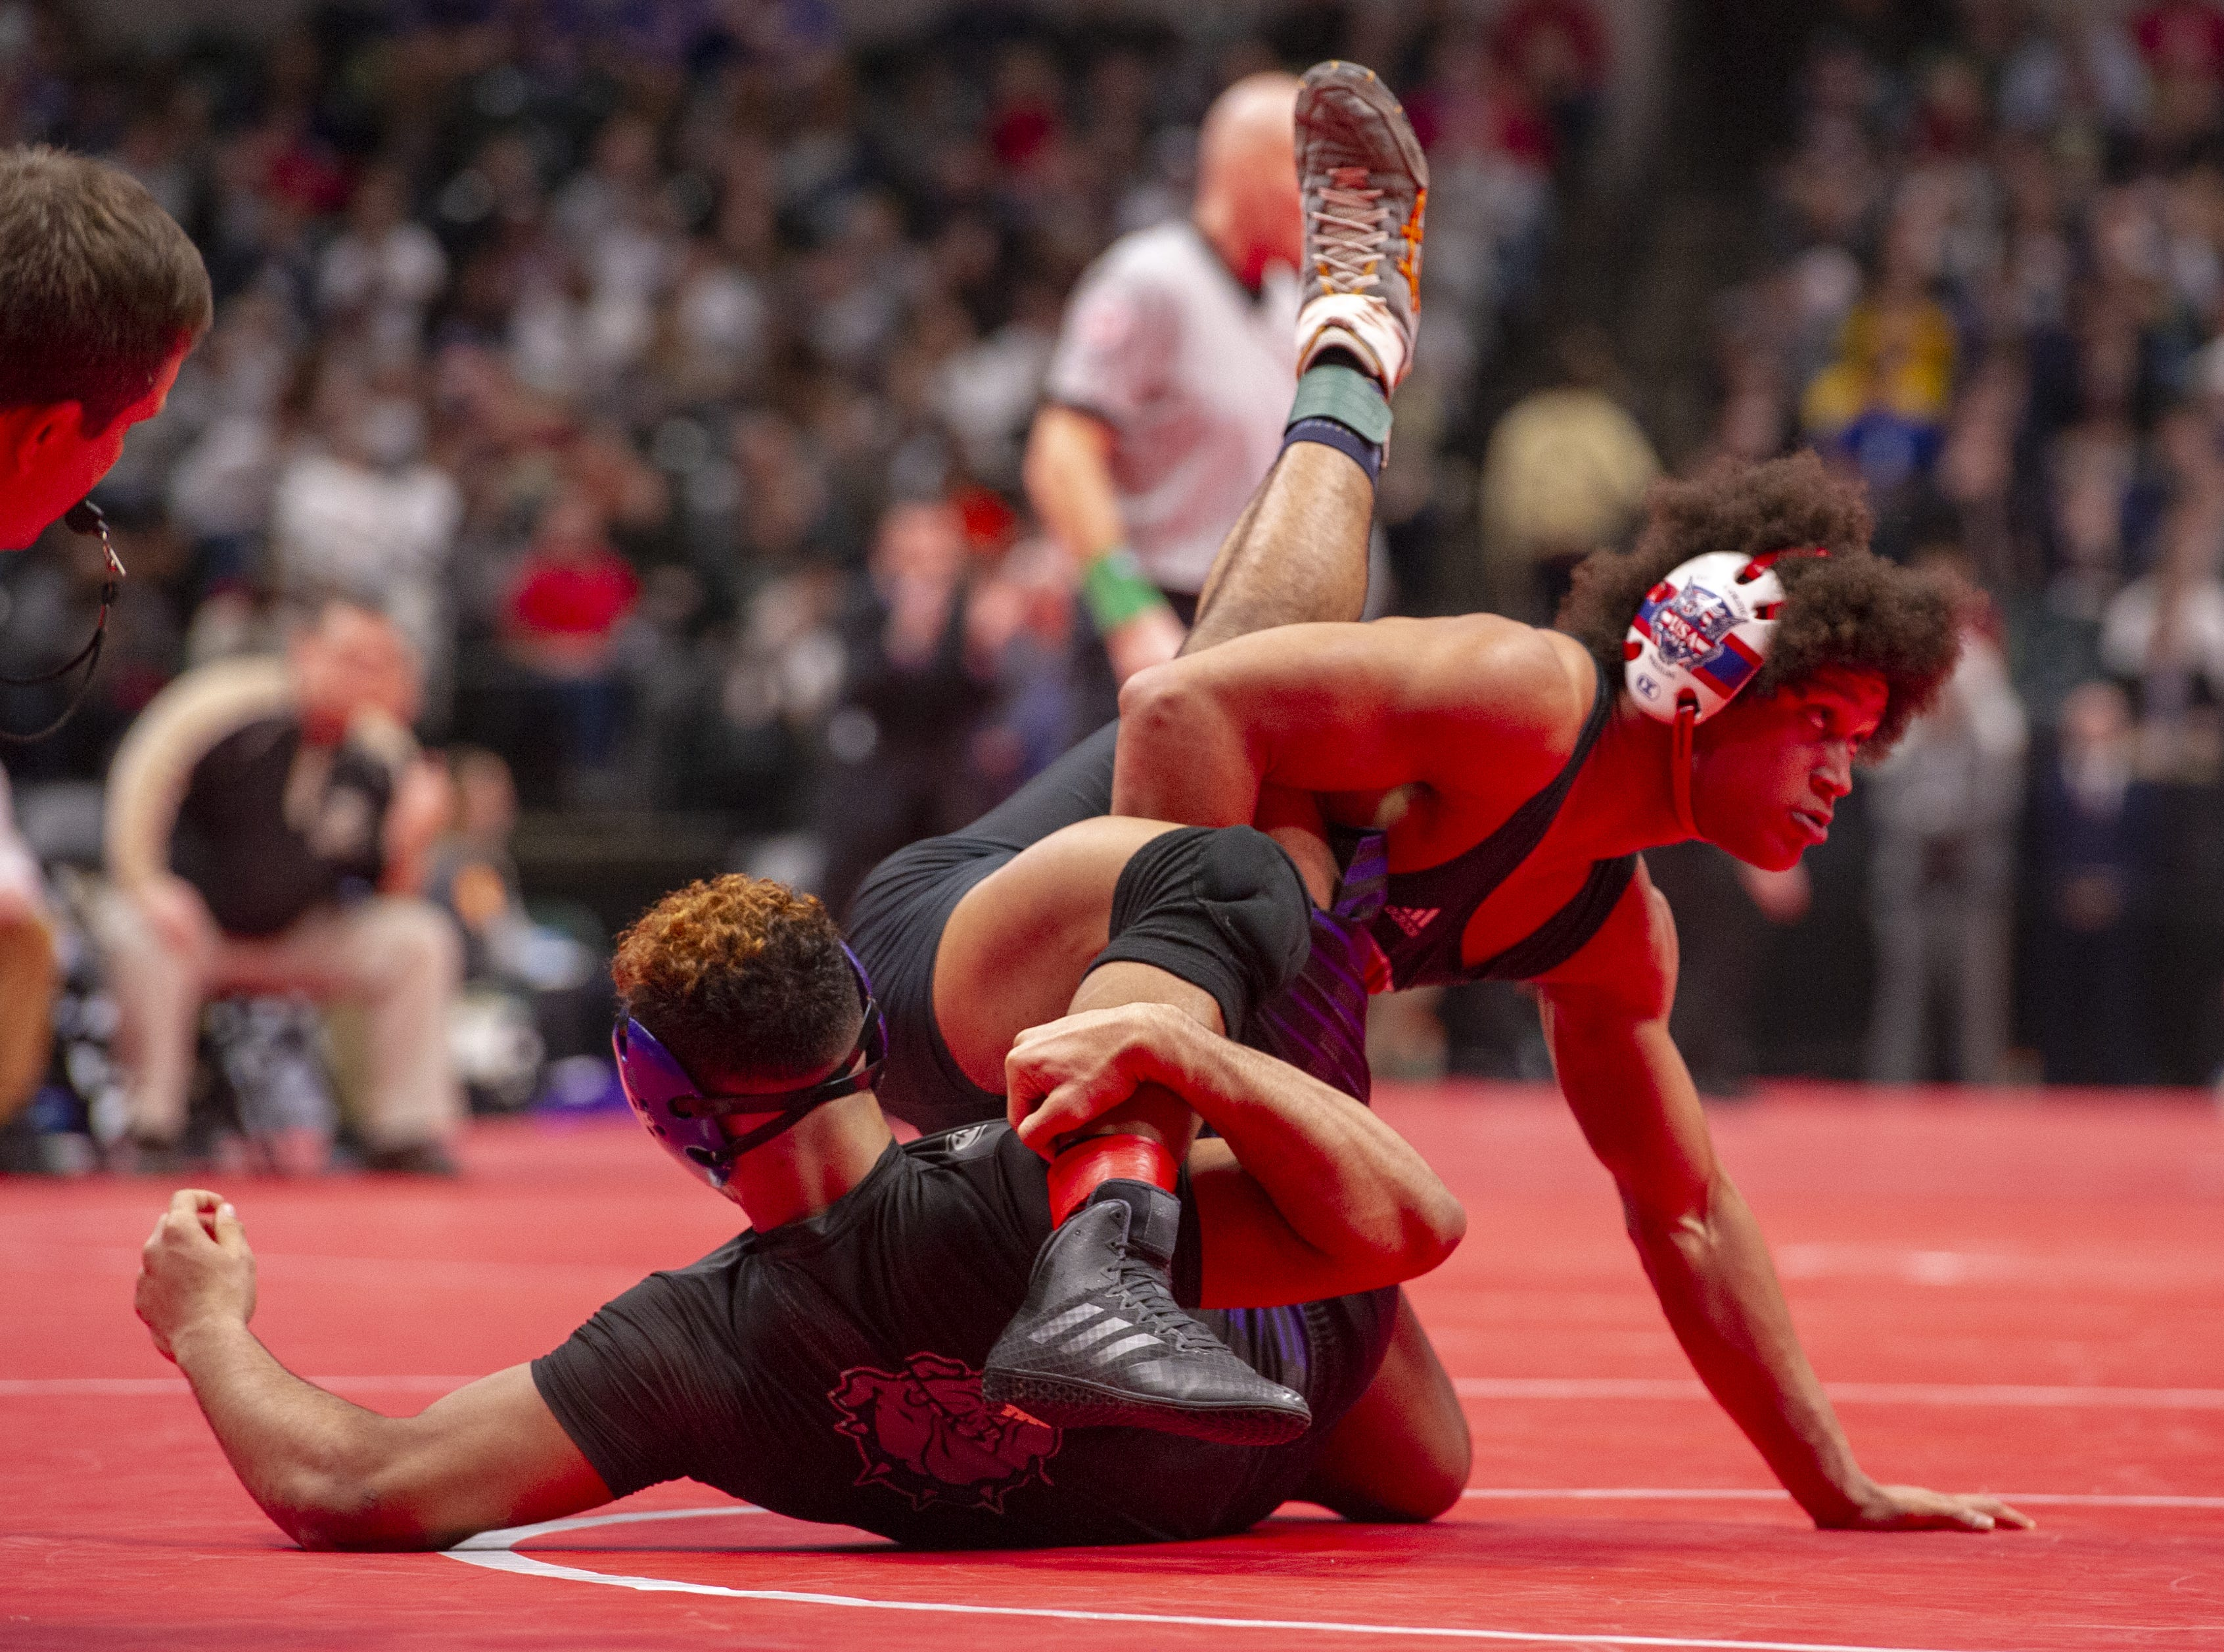 Roncalli High School wrestler Elijah Mahan, top, wrestles Brownsburg High School wrestler Thierry Jean-Baptiste in the 170-pound weight class during the first day of competition in the 81st Annual IHSAA Wrestling State Finals at Bankers Life Fieldhouse in Indianapolis, Friday, Feb. 15, 2019.